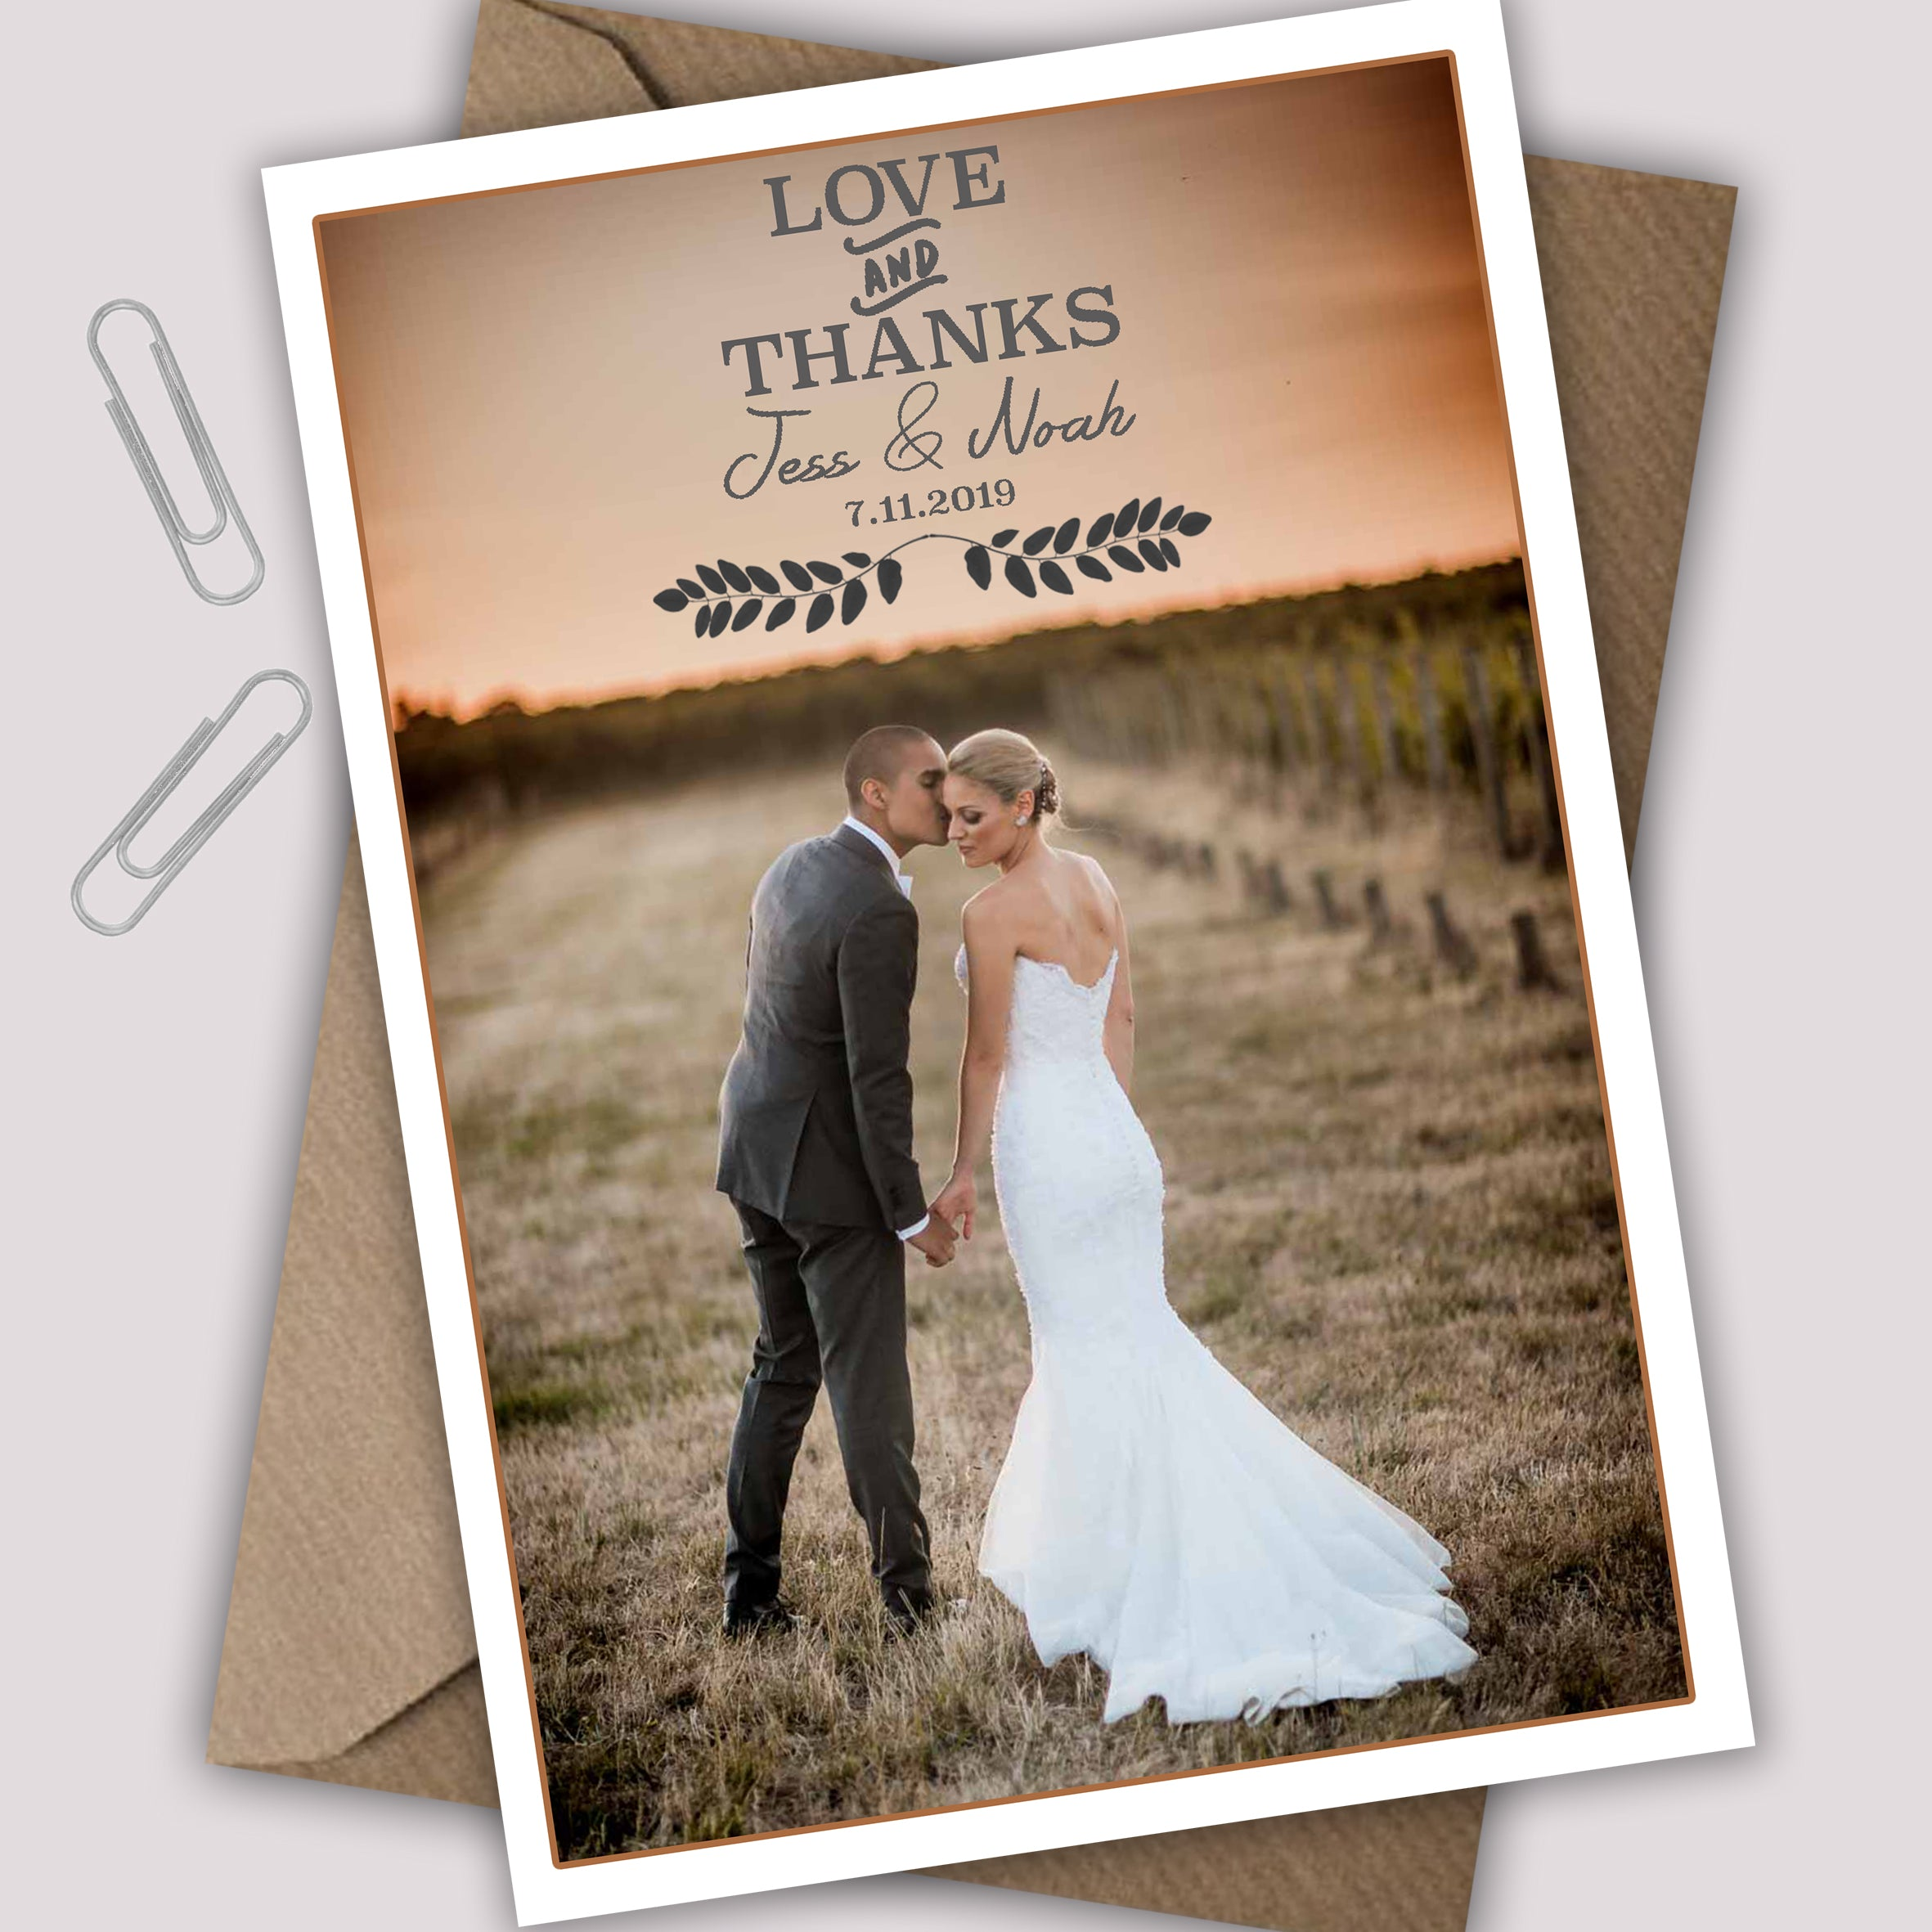 Wedding Thank You Cards.Love And Thanks Single Photo Wedding Thank You Cards